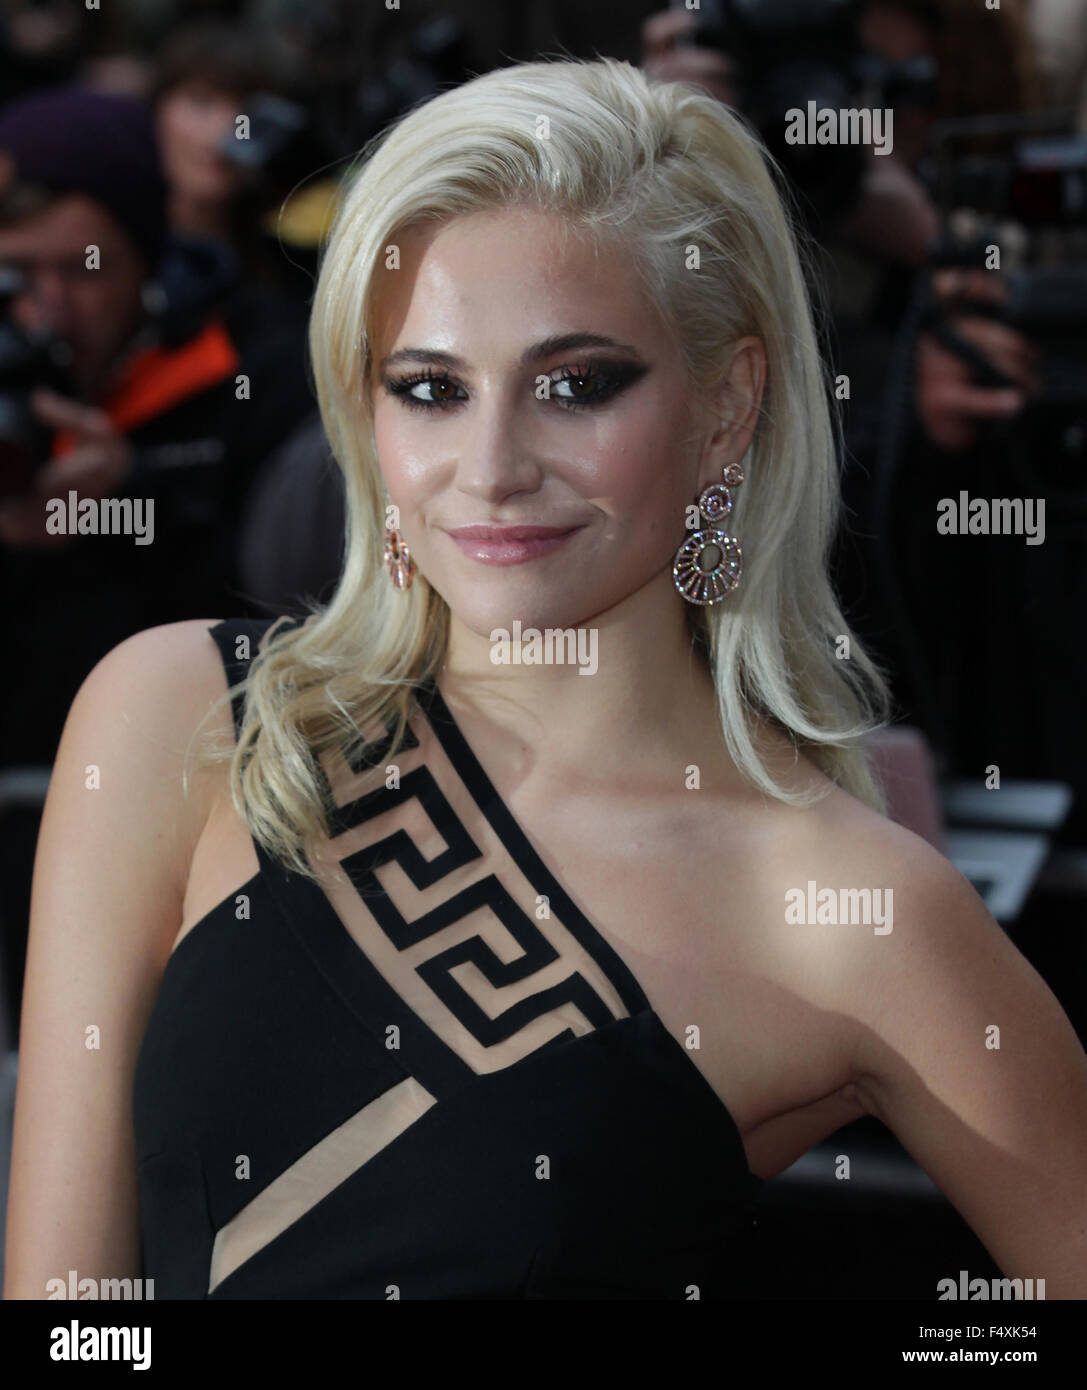 6aac36ffcd4d London, UK, 8th Sep 2015: Pixie Lott attends the GQ Men of the